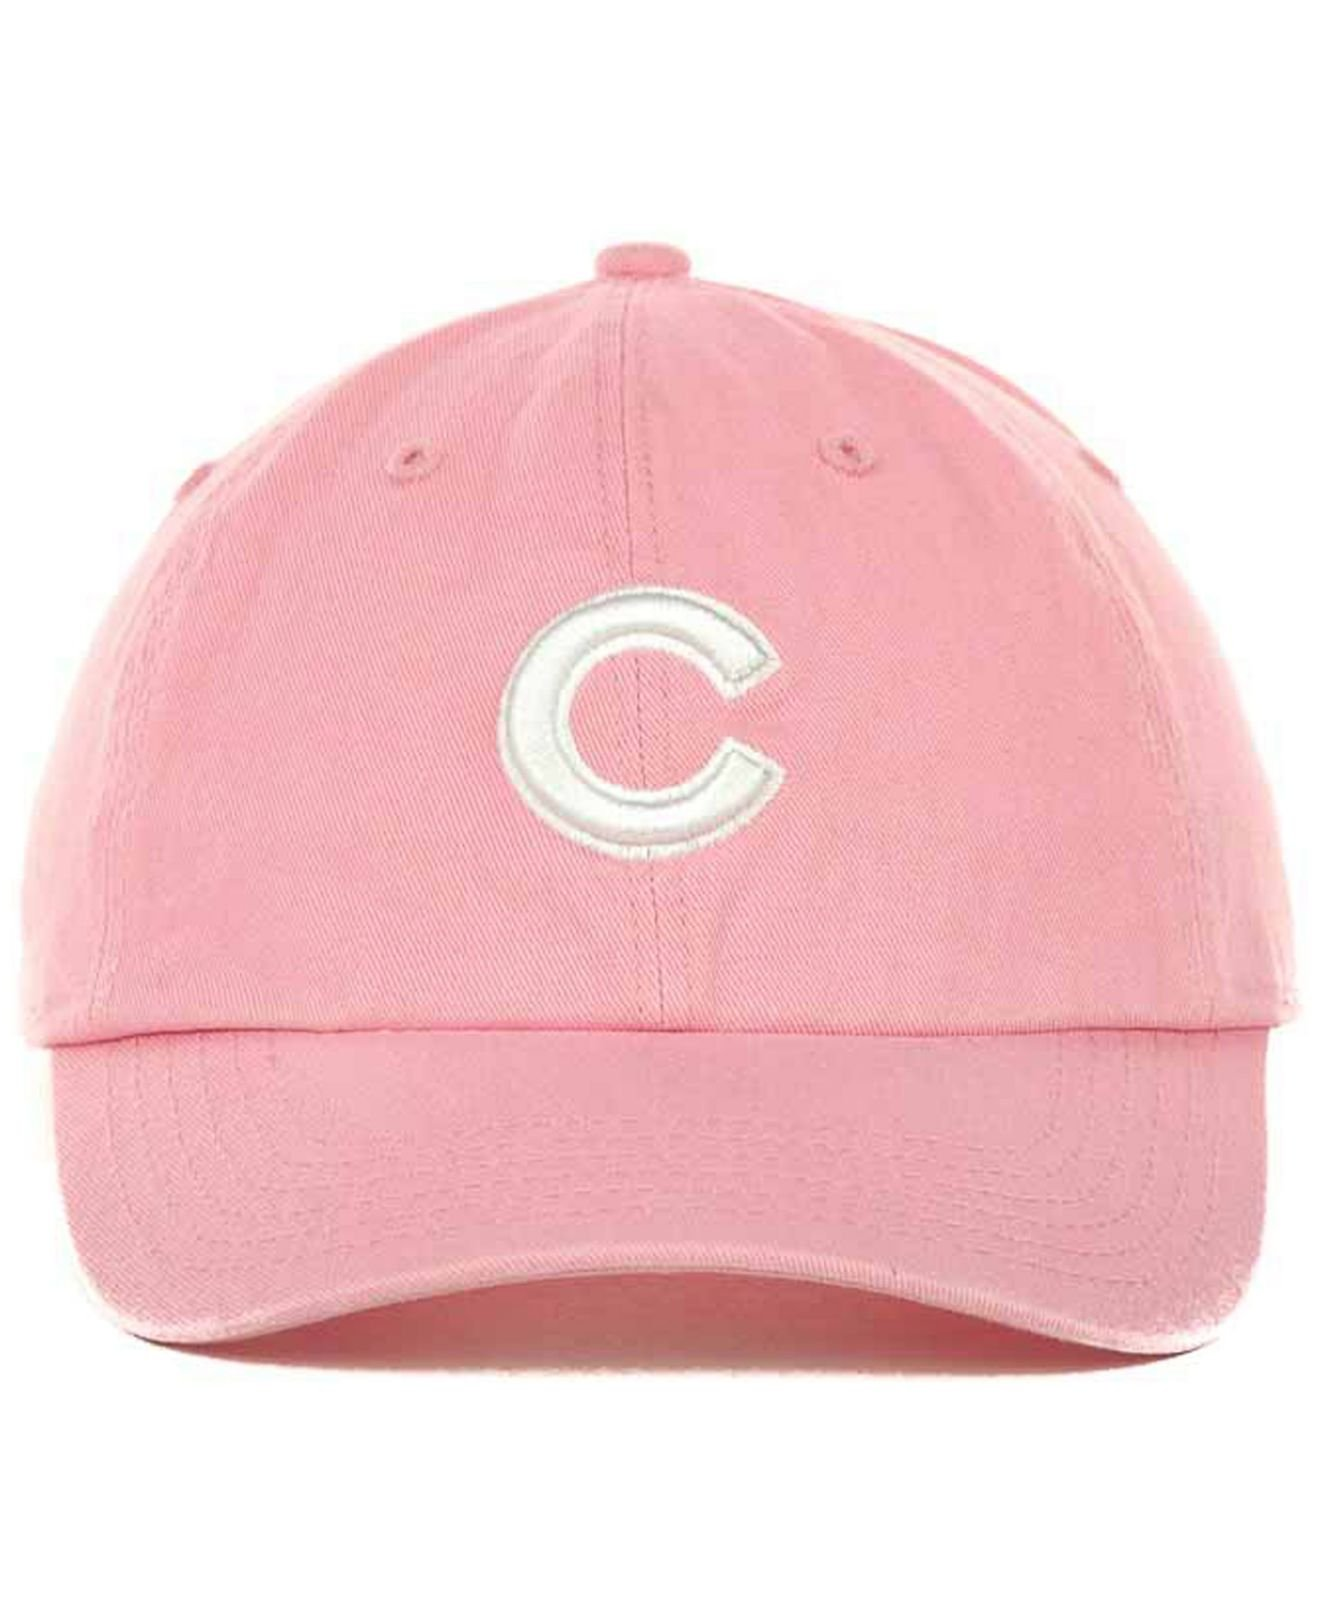 Lyst - 47 Brand Chicago Cubs Clean Up Hat in Pink for Men 5d5c2f85793